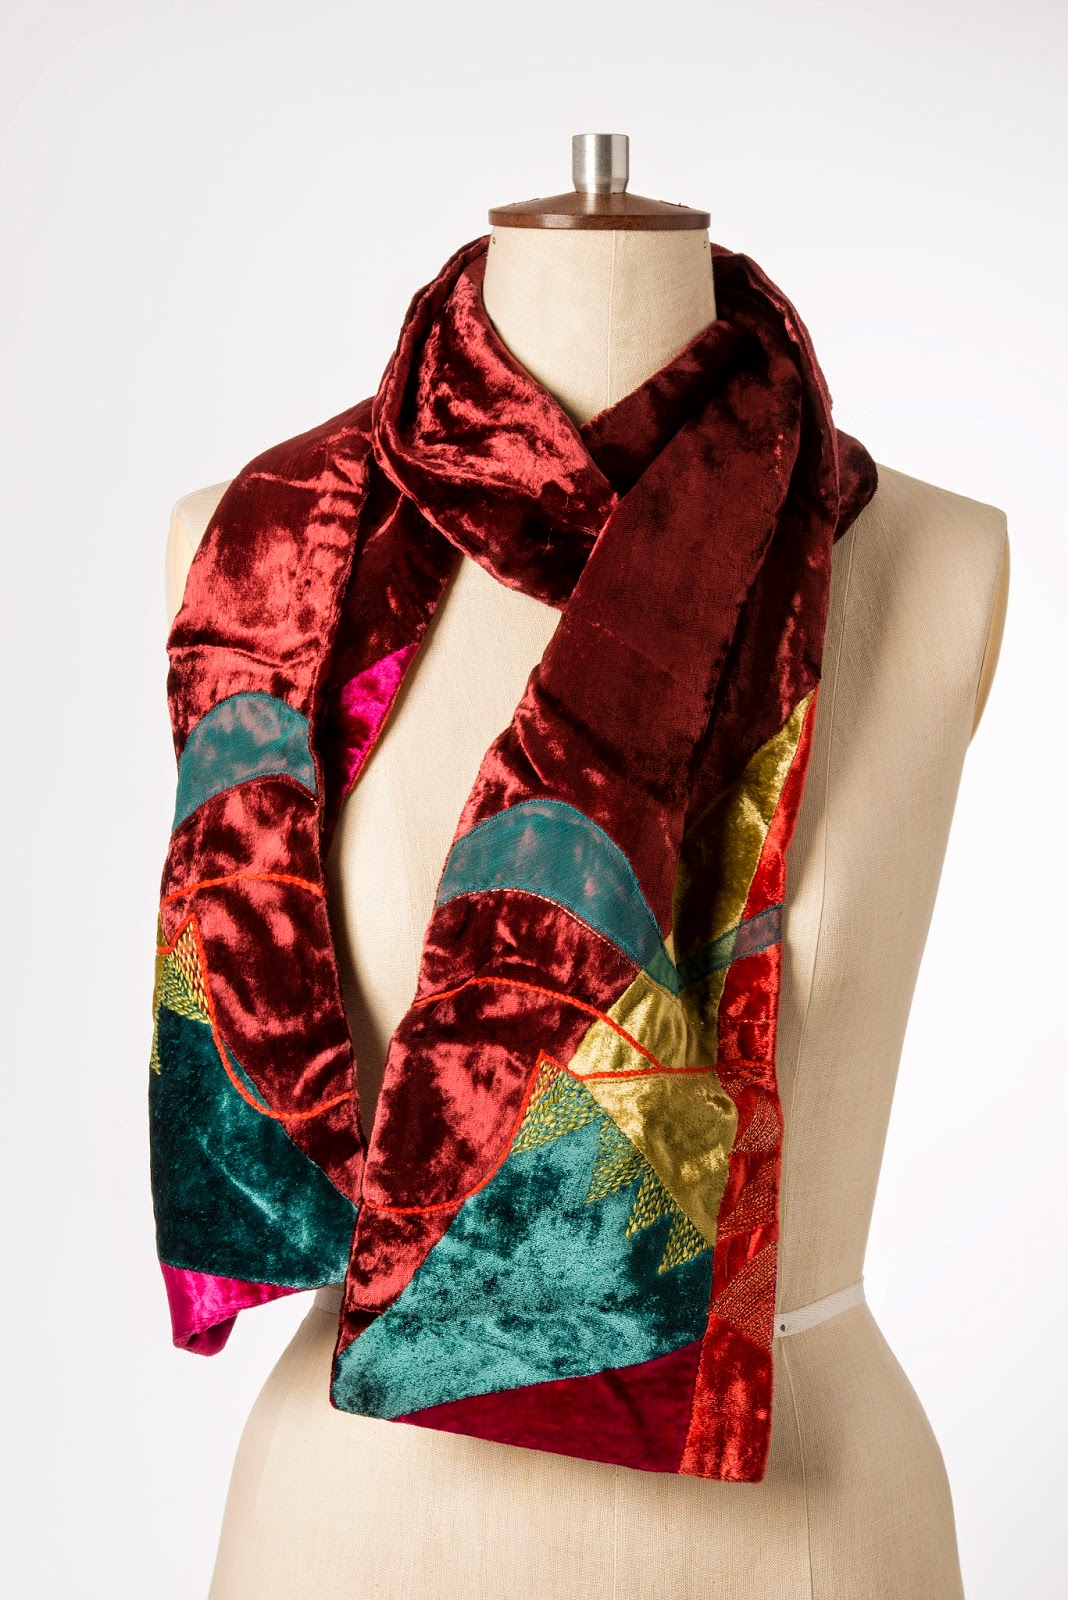 Sale Scarves Stock up on versatile scarves. Fall scarves can be worn in endless ways for unlimited looks – which makes the Joy Susan scarves sale one of the best deals around.